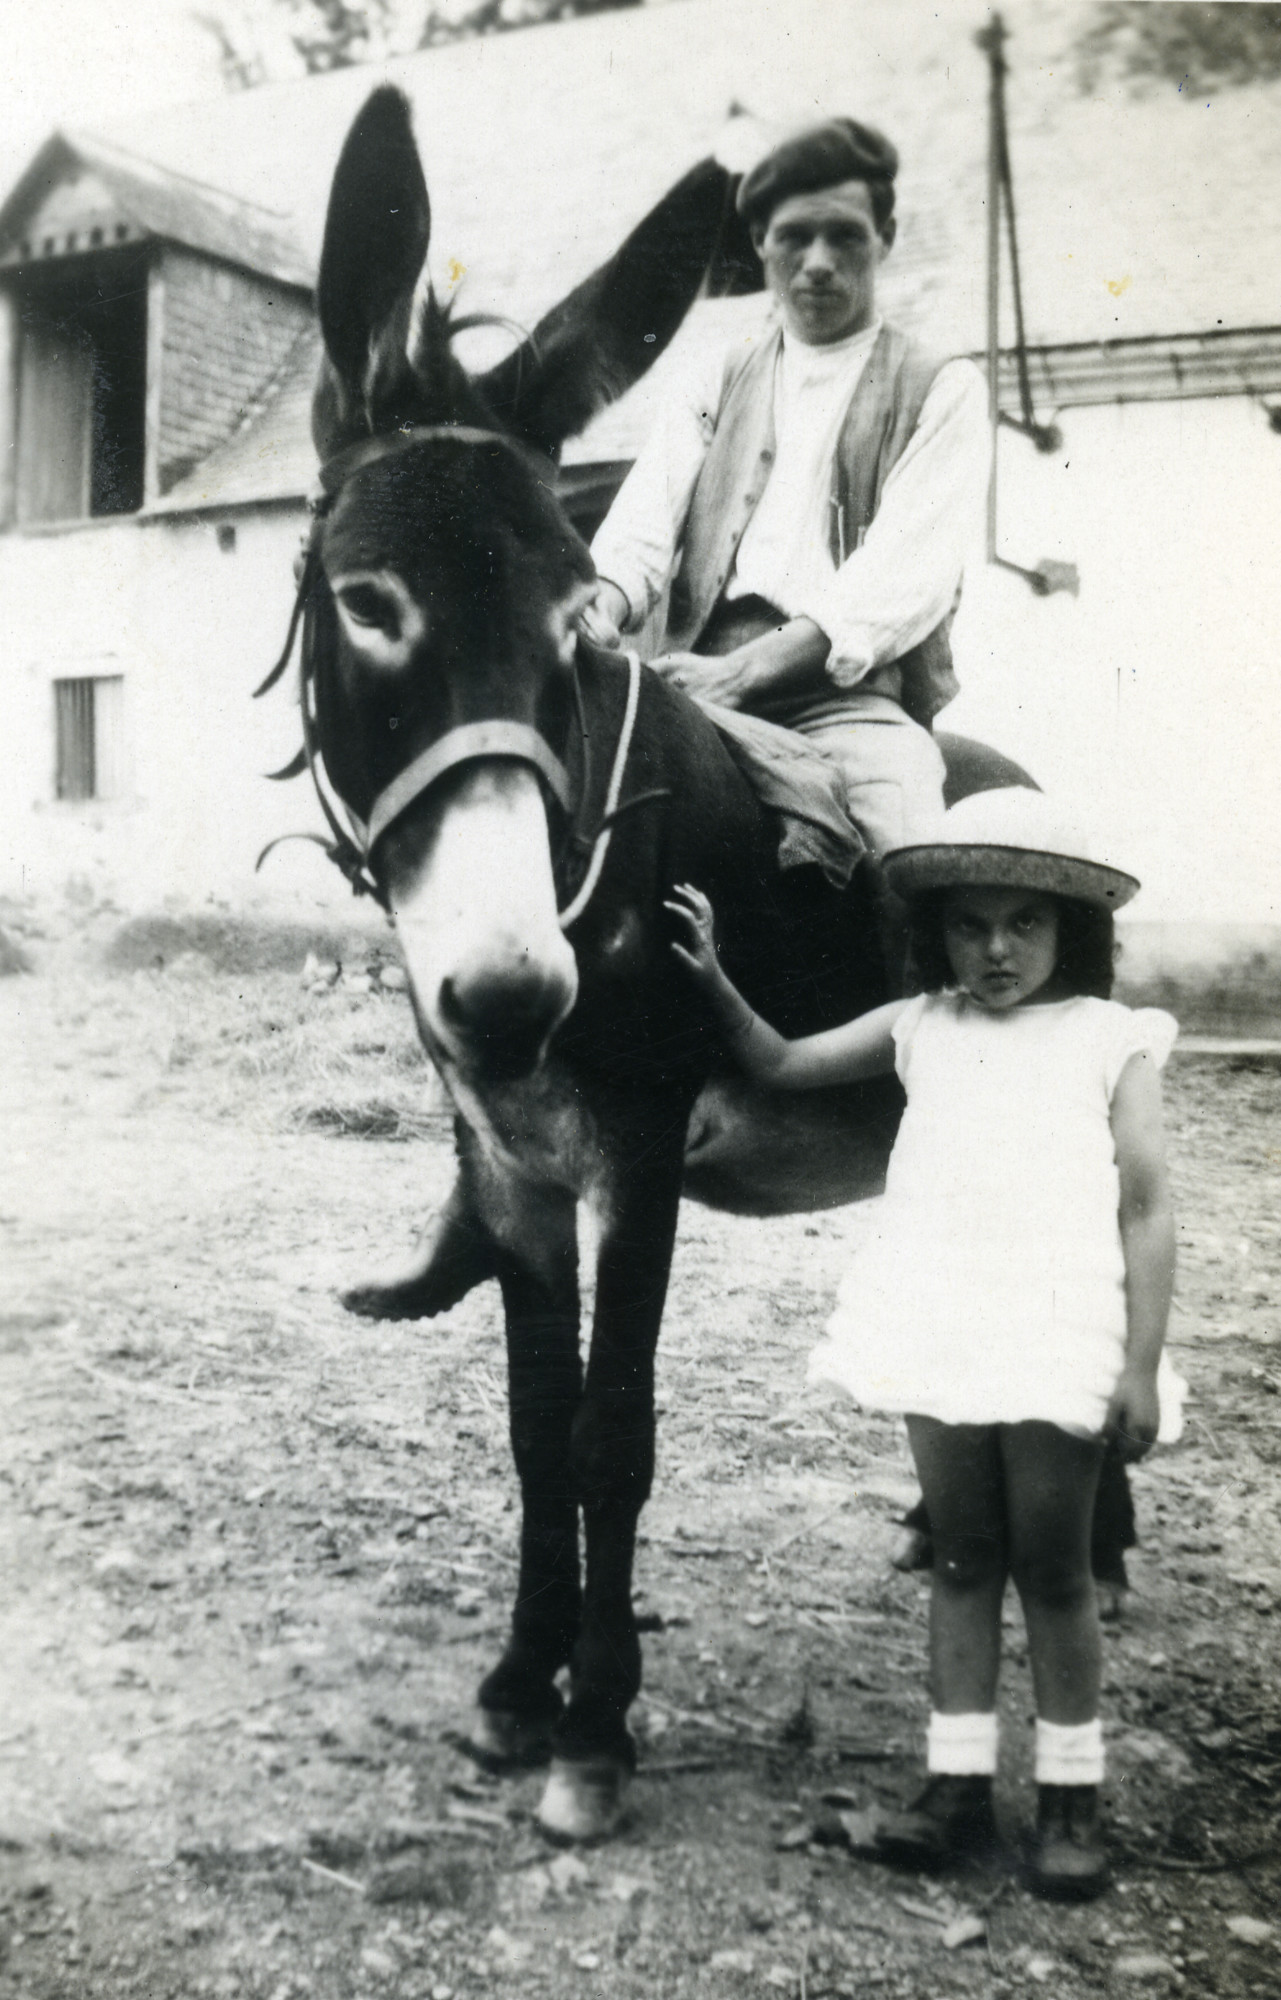 Ora stands next to her rescuer who is riding a donkey.